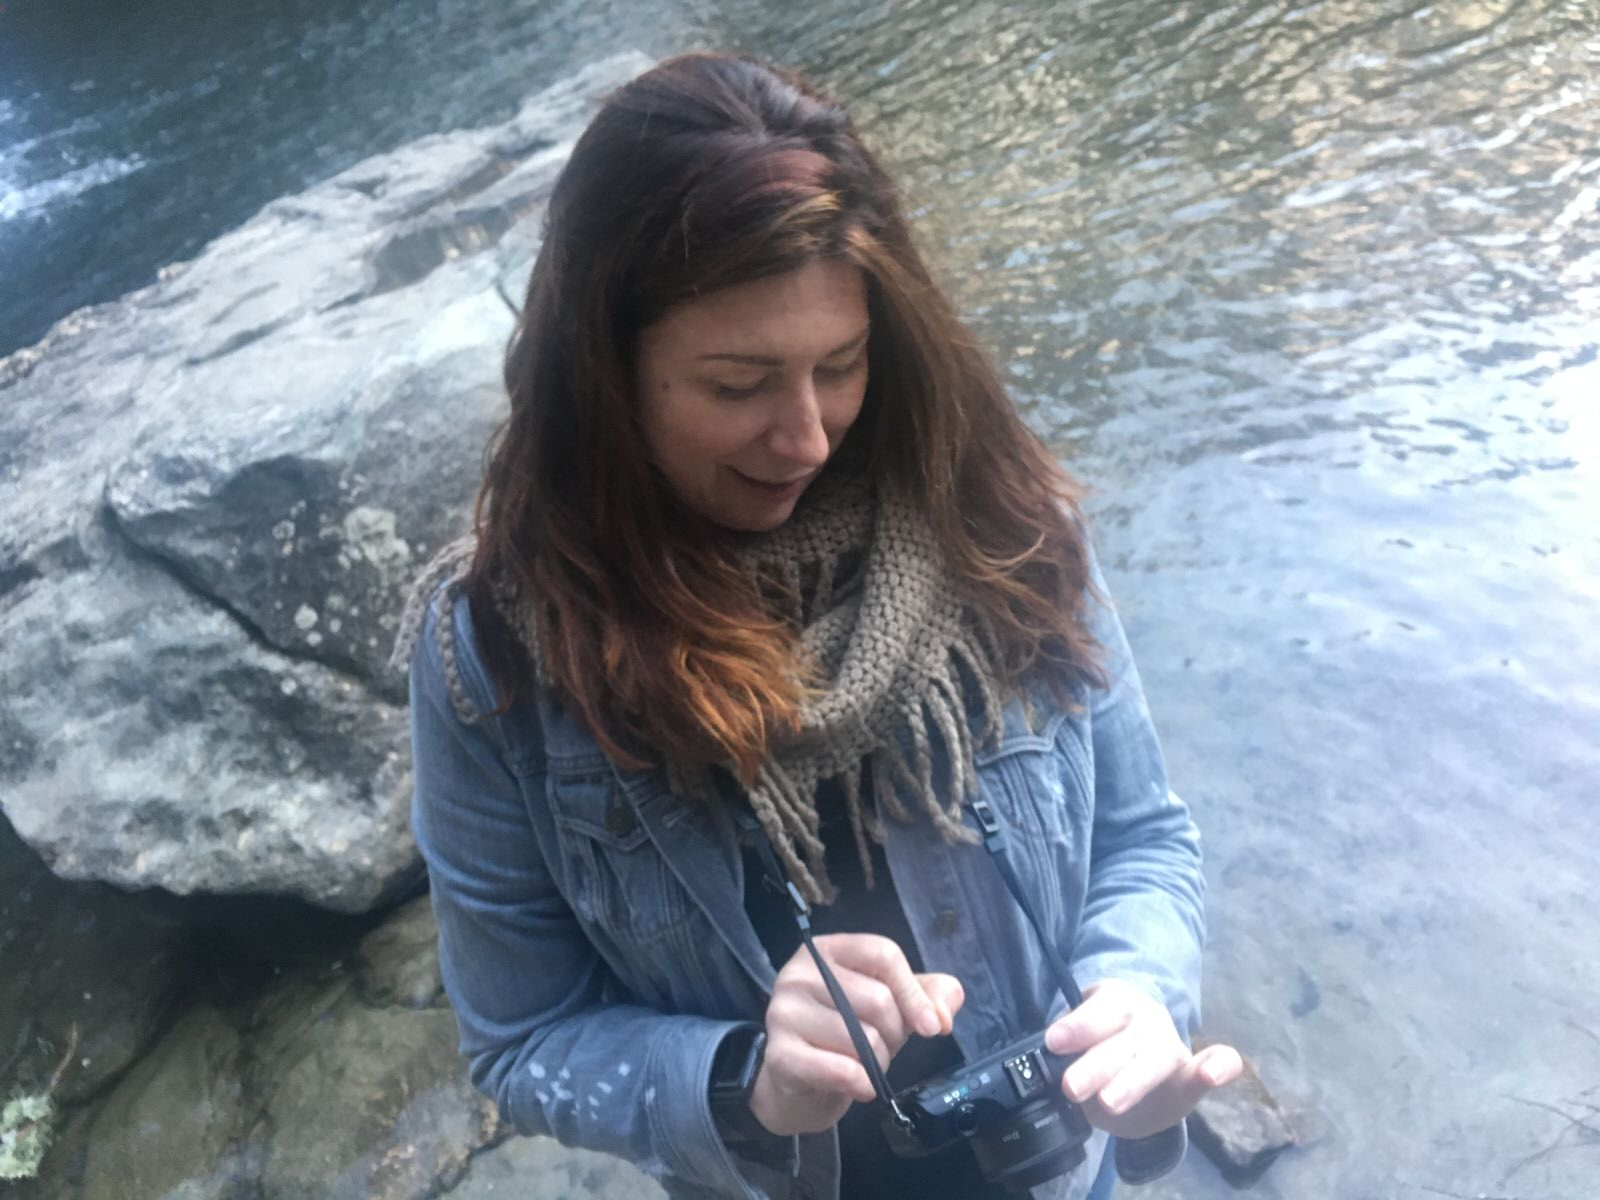 Fauna with her camera